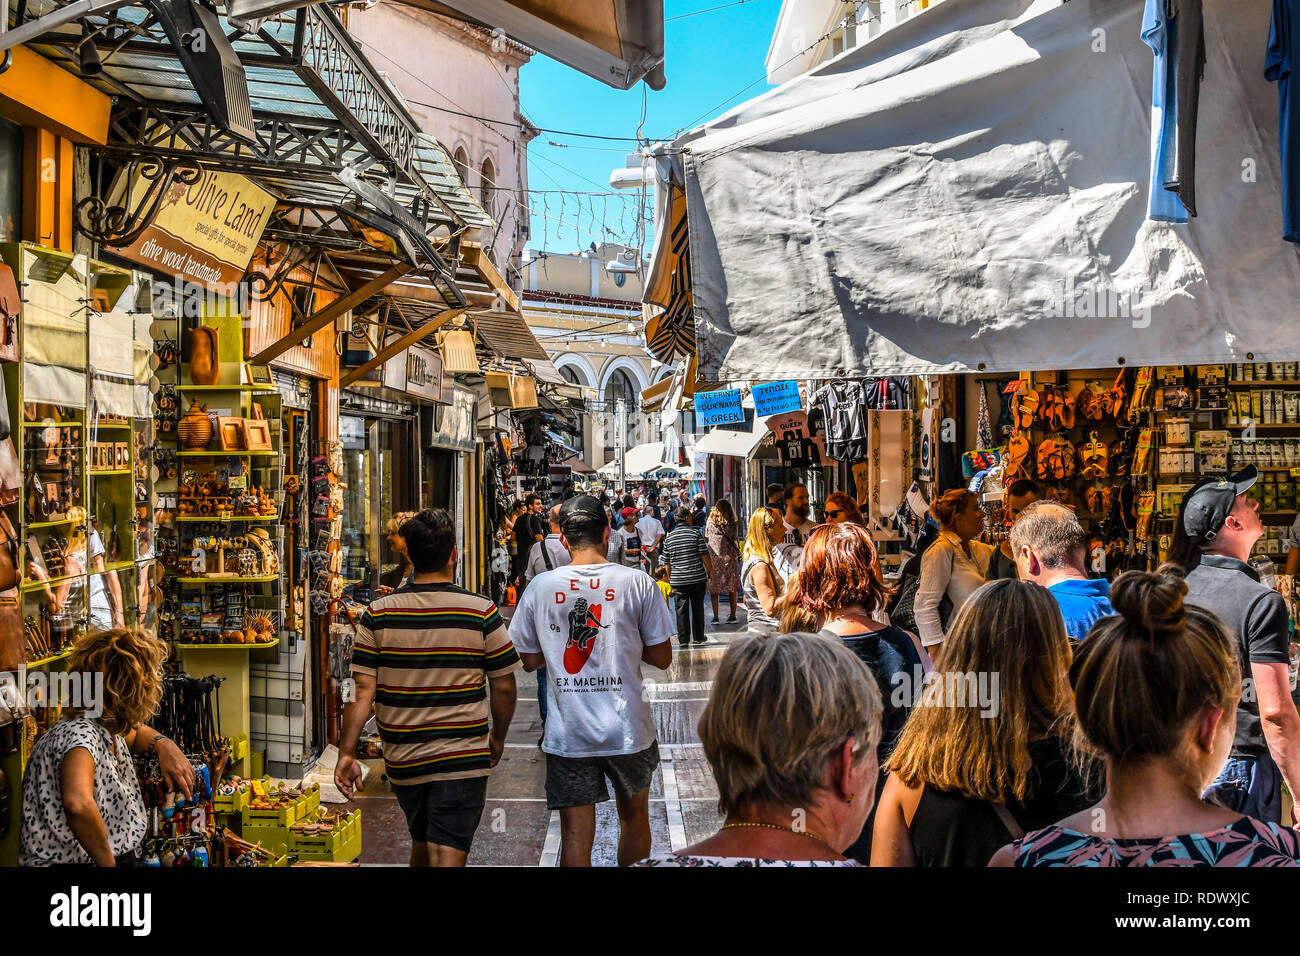 Athens, Greece - September 22 2018: Tourists walk the streets lined with souvenir shops and cafes in the touristic Plaka section of Athens, Greece Stock Photo